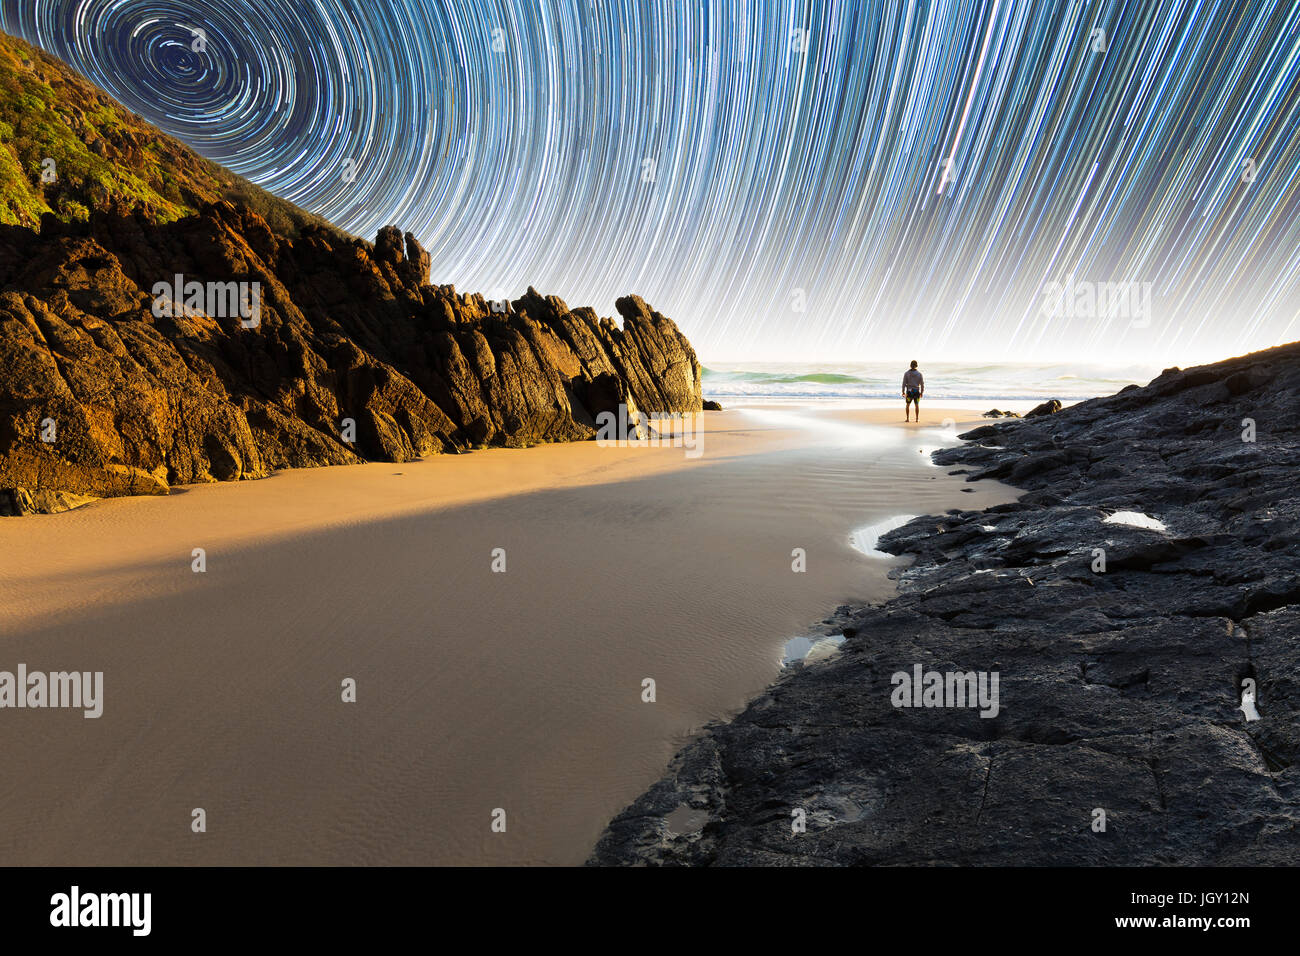 A man standing on a beautiful, isolated beach in Australia underneath a mesmerizing star trail - Stock Image